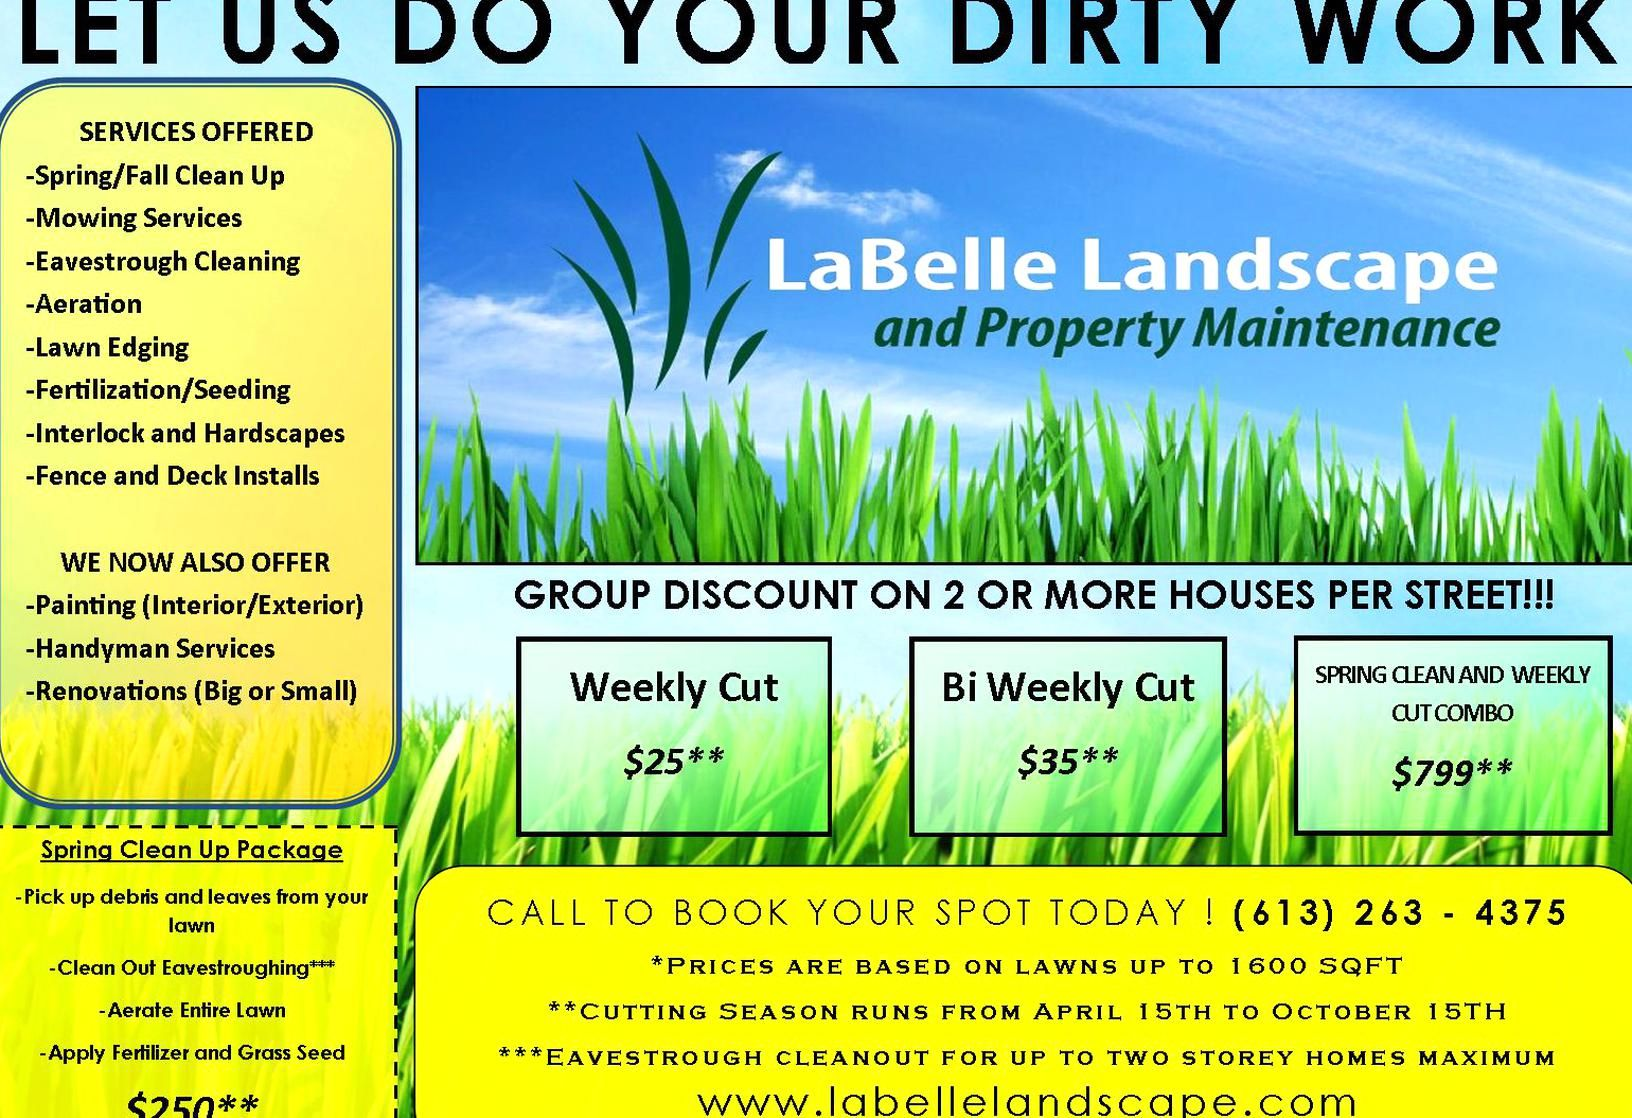 Lawn Care Flyer Ideas Awesome Lawn Care Flyer Free Template Flyer Templates In 2020 Lawn Care Flyers Lawn Care Business Mowing Services